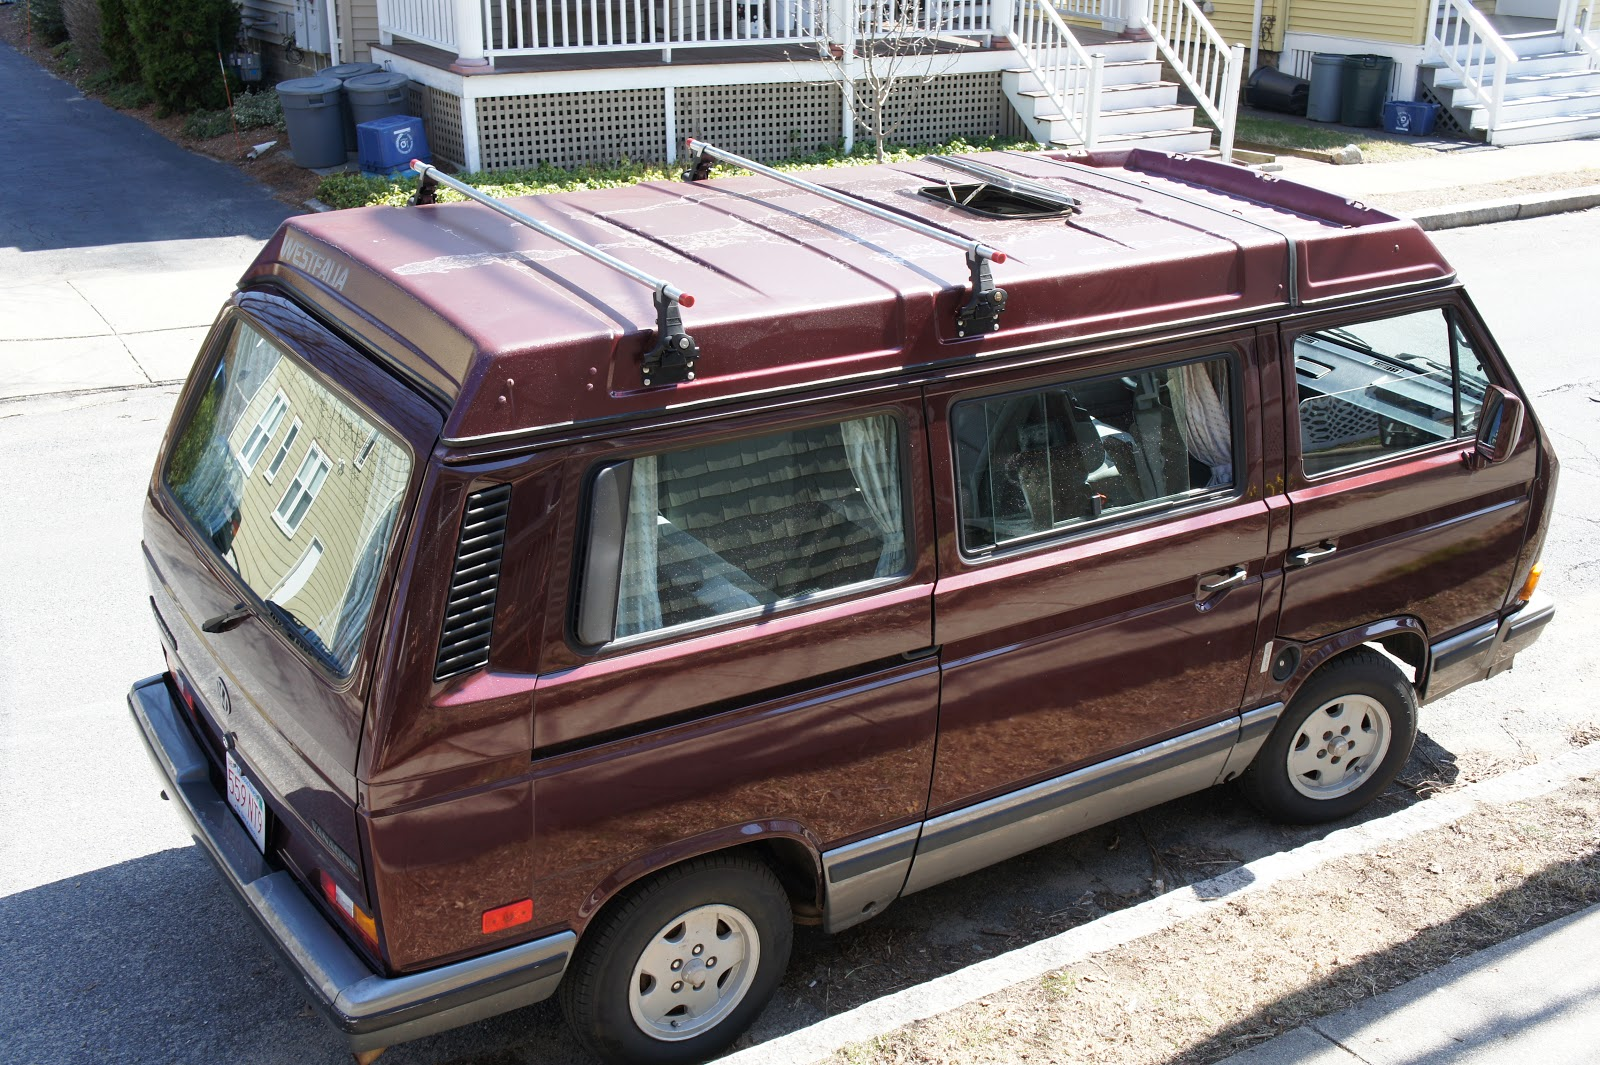 Vanagon Travels: VW Vanagon Road Trip and Photo Blog ...